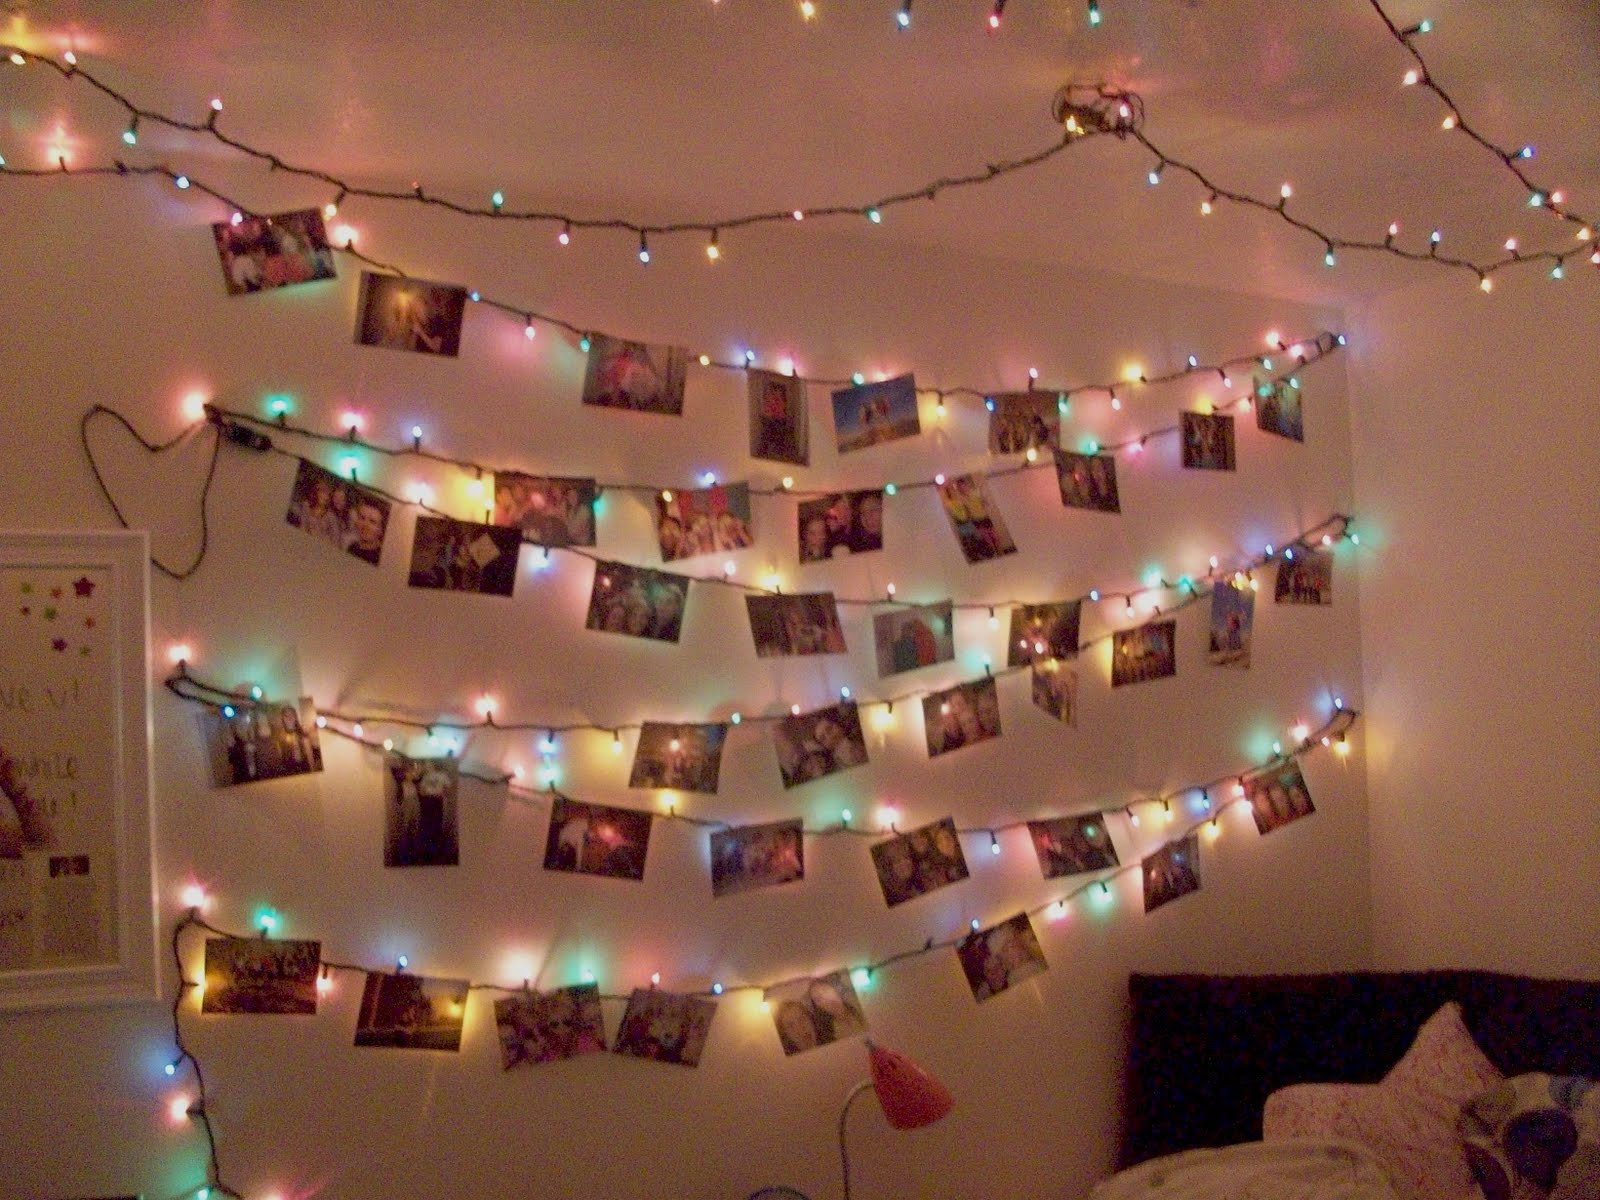 Top 10 Wall Of Christmas Lights 2020 Warisan Lighting,What Color Shirt Goes Well With Dark Blue Jeans